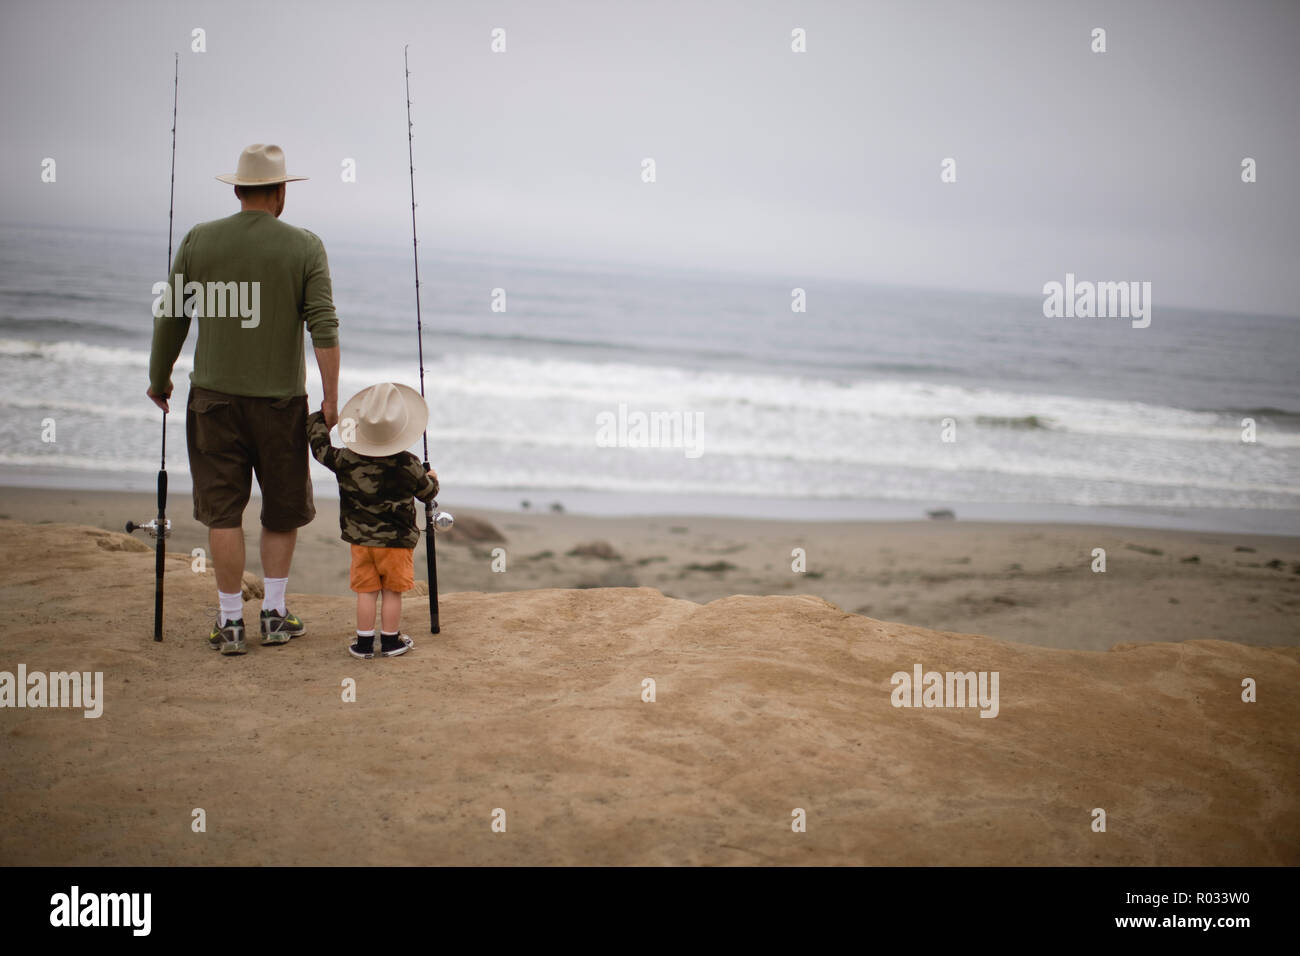 f56e98eac4f Young boy and his father walking along a beach carrying fishing rods and  wearing hats.